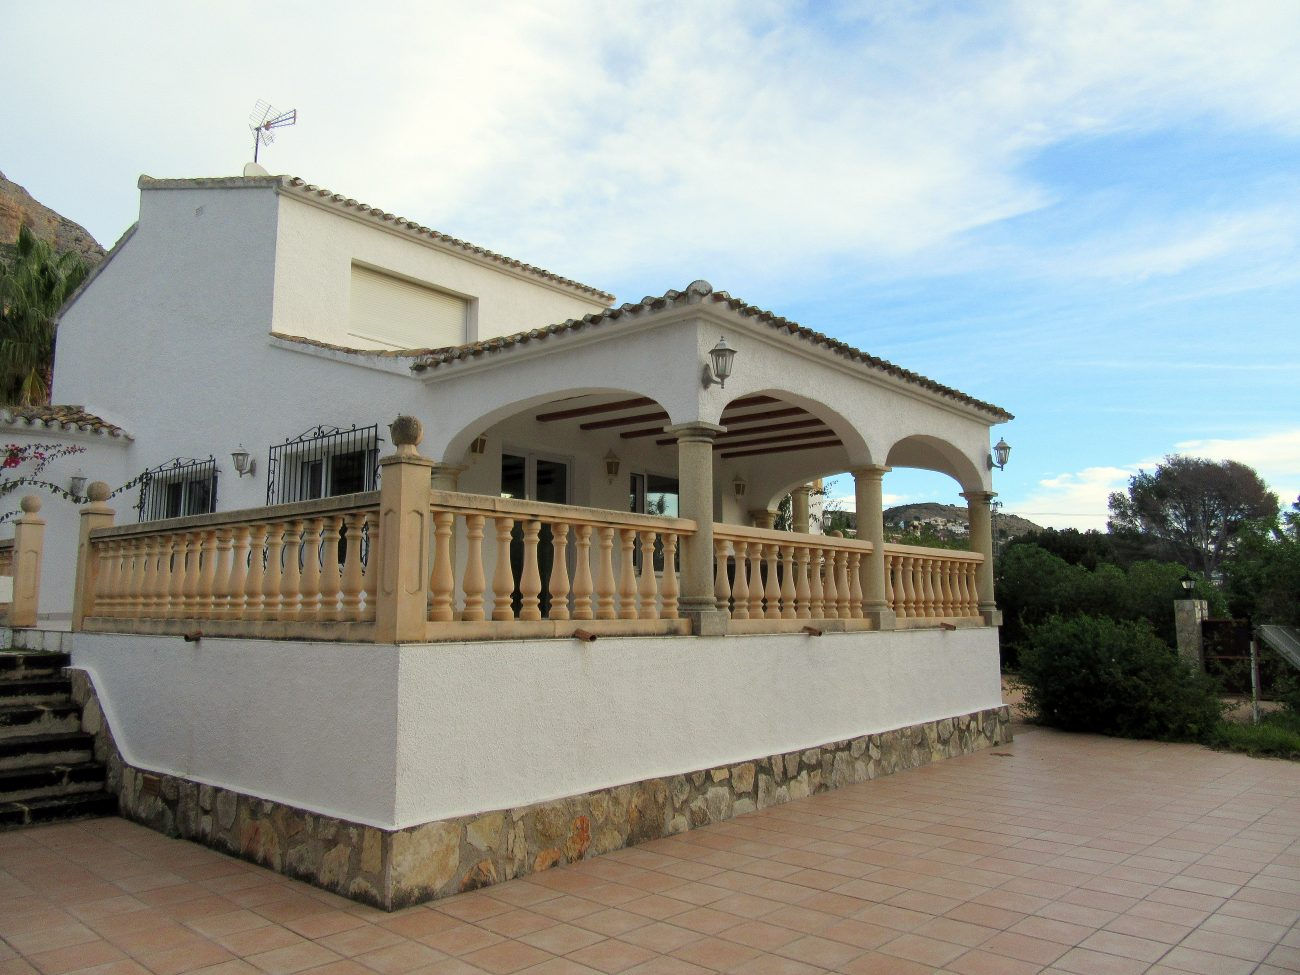 Xàbiacasa offers you this house located in a popular area of Jávea